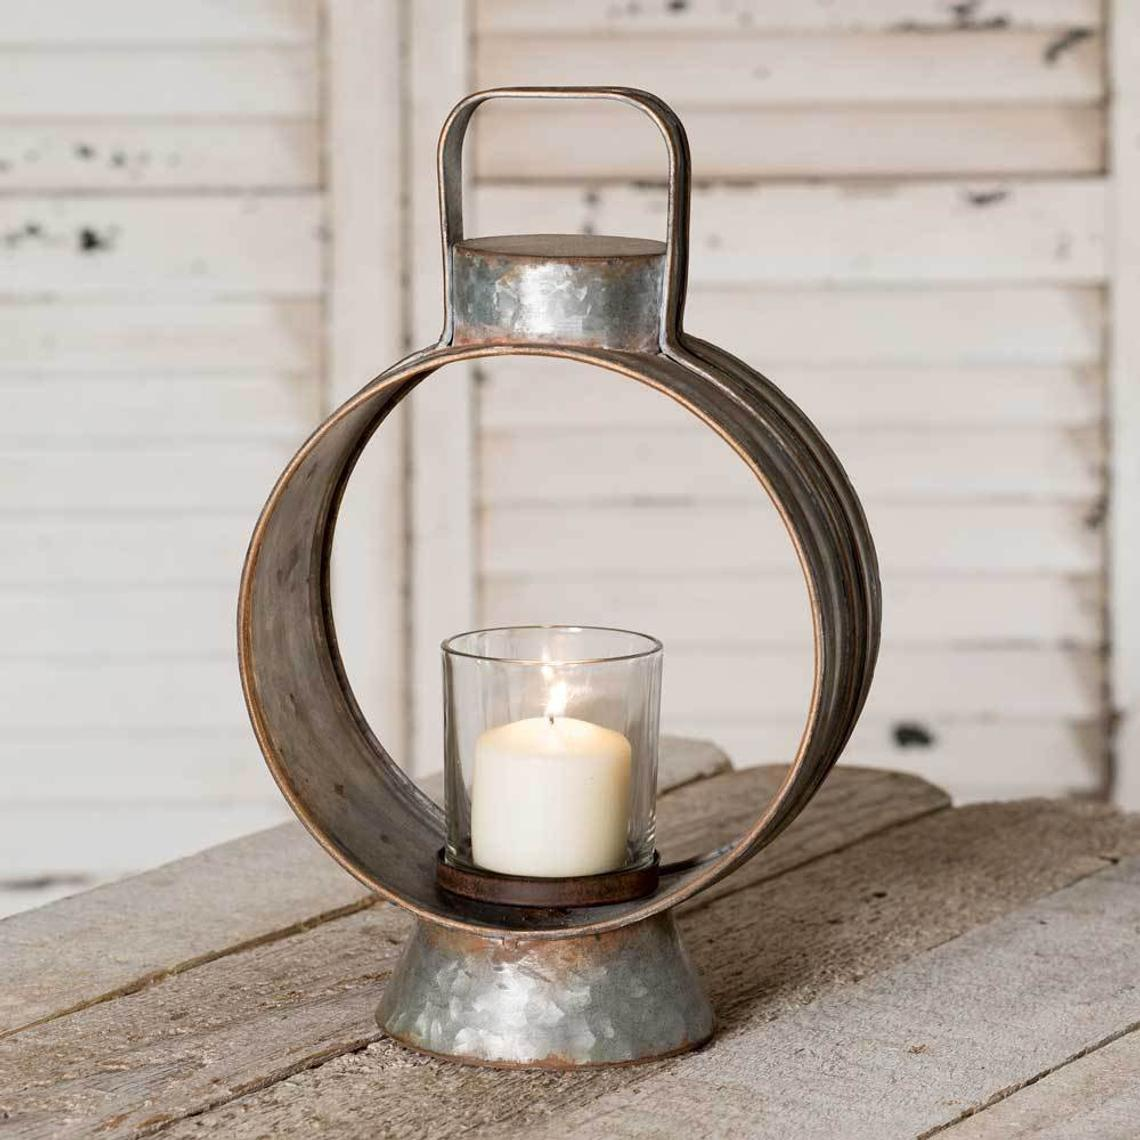 Round metal table top lantern with glass candle holder in the middle